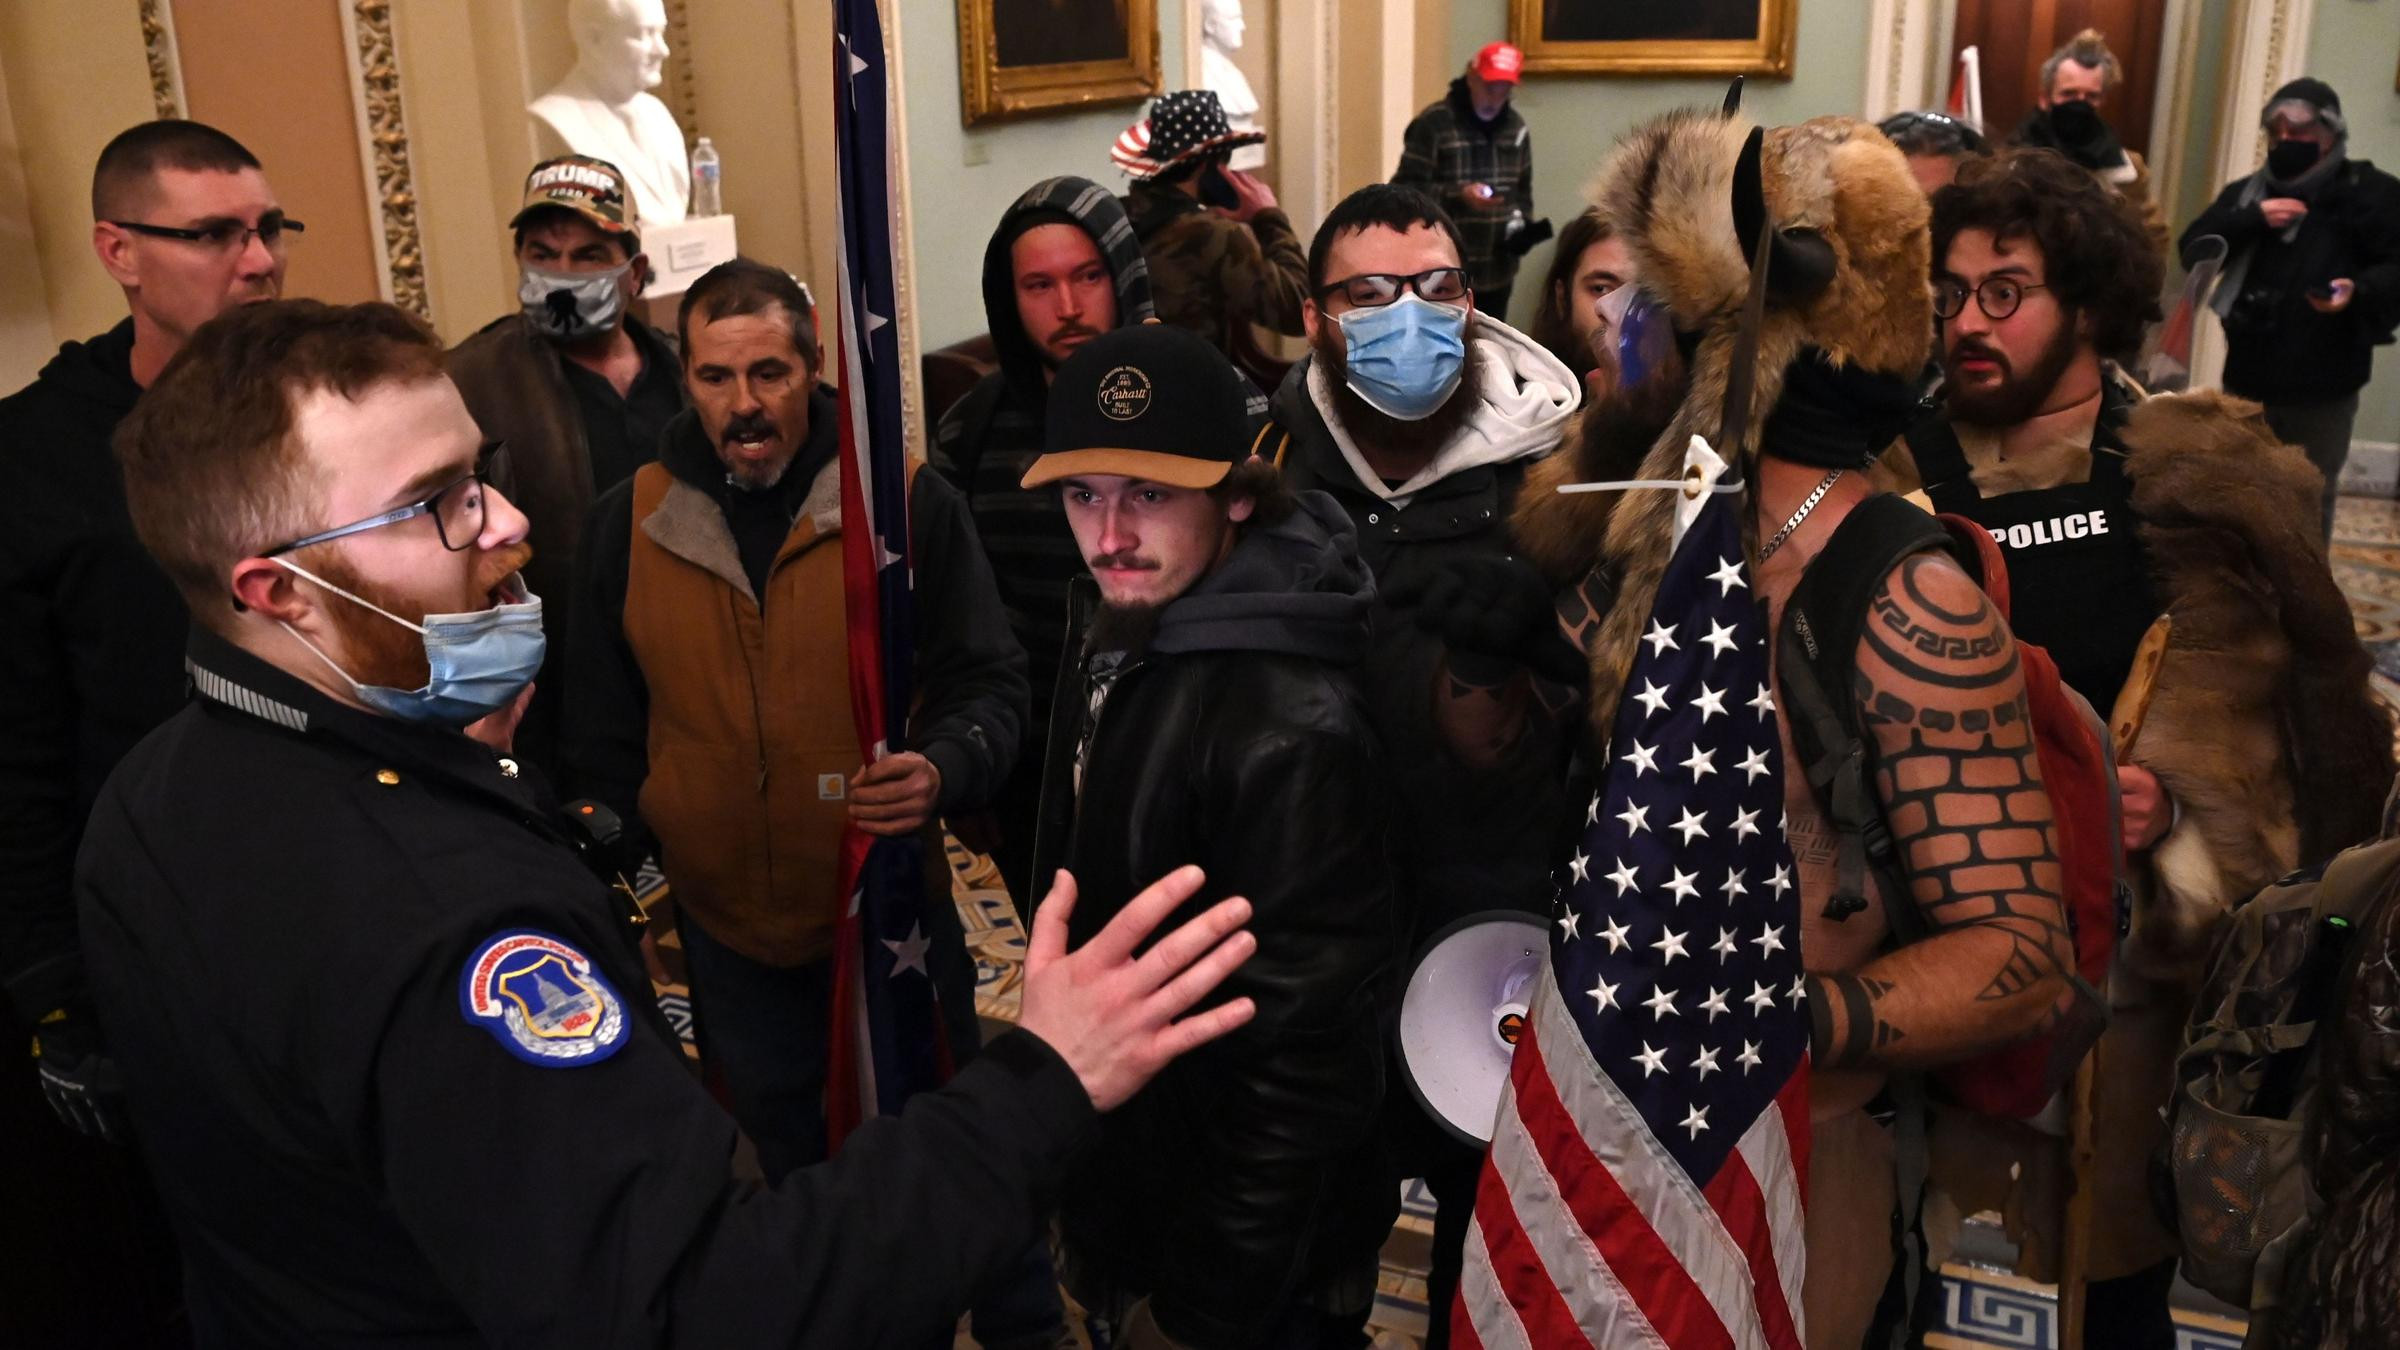 ?Strong evidence? shows Pro-Trump supporters intended to kill Mike Pence, members of congress during U.S. Capitol riot, prosecutors say